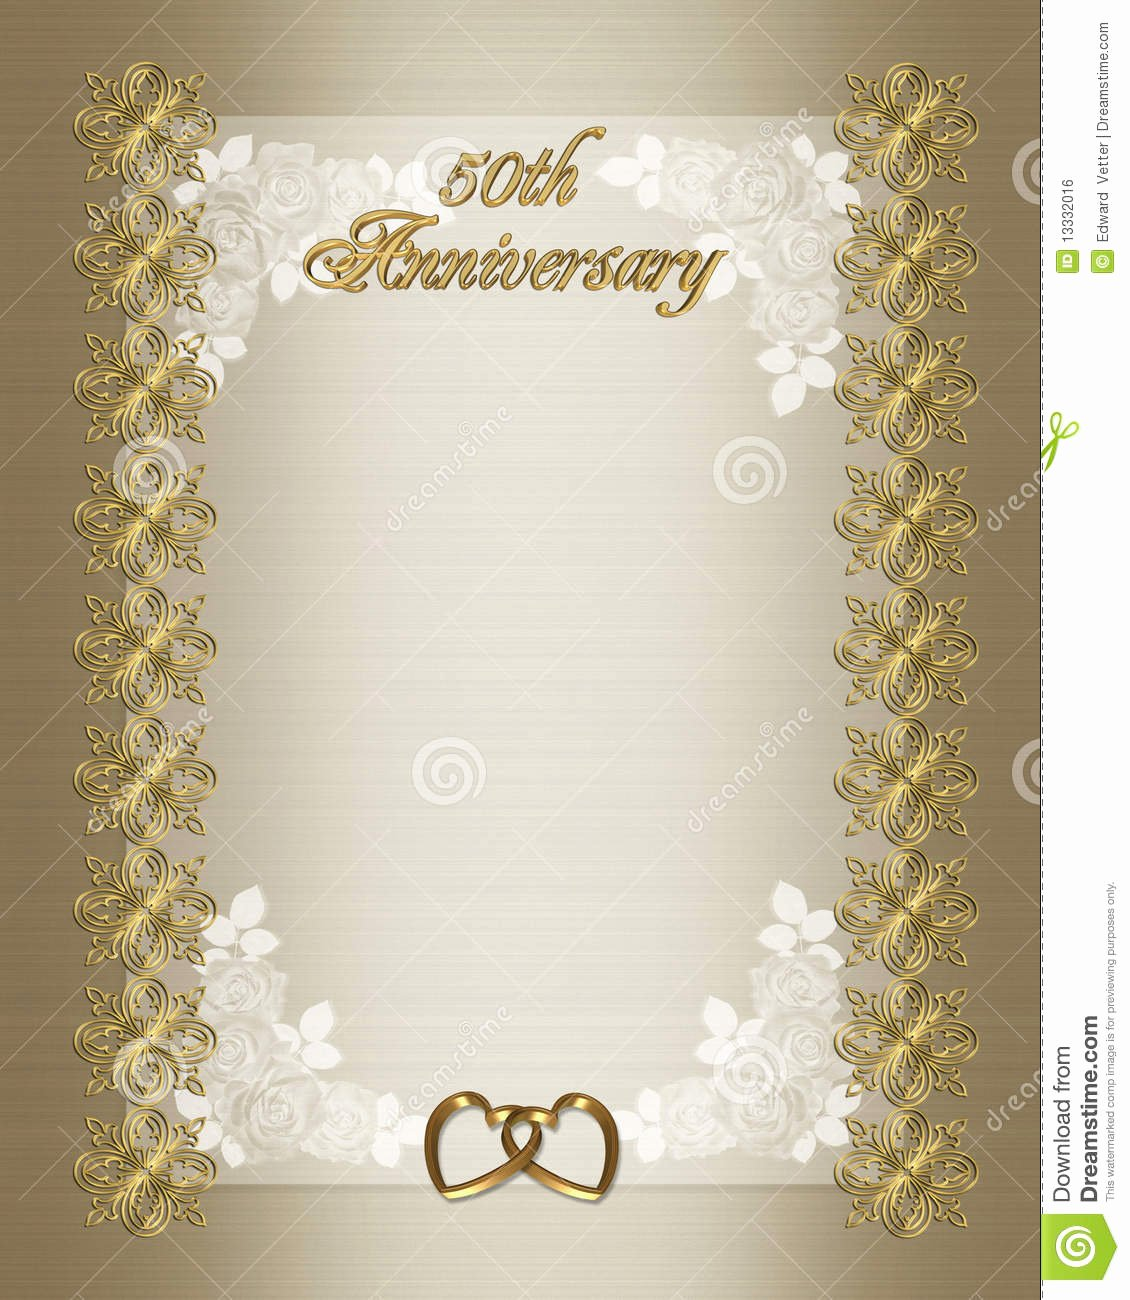 Free Anniversary Invitation Templates Inspirational 50th Wedding Anniversary Invitation Template Stock